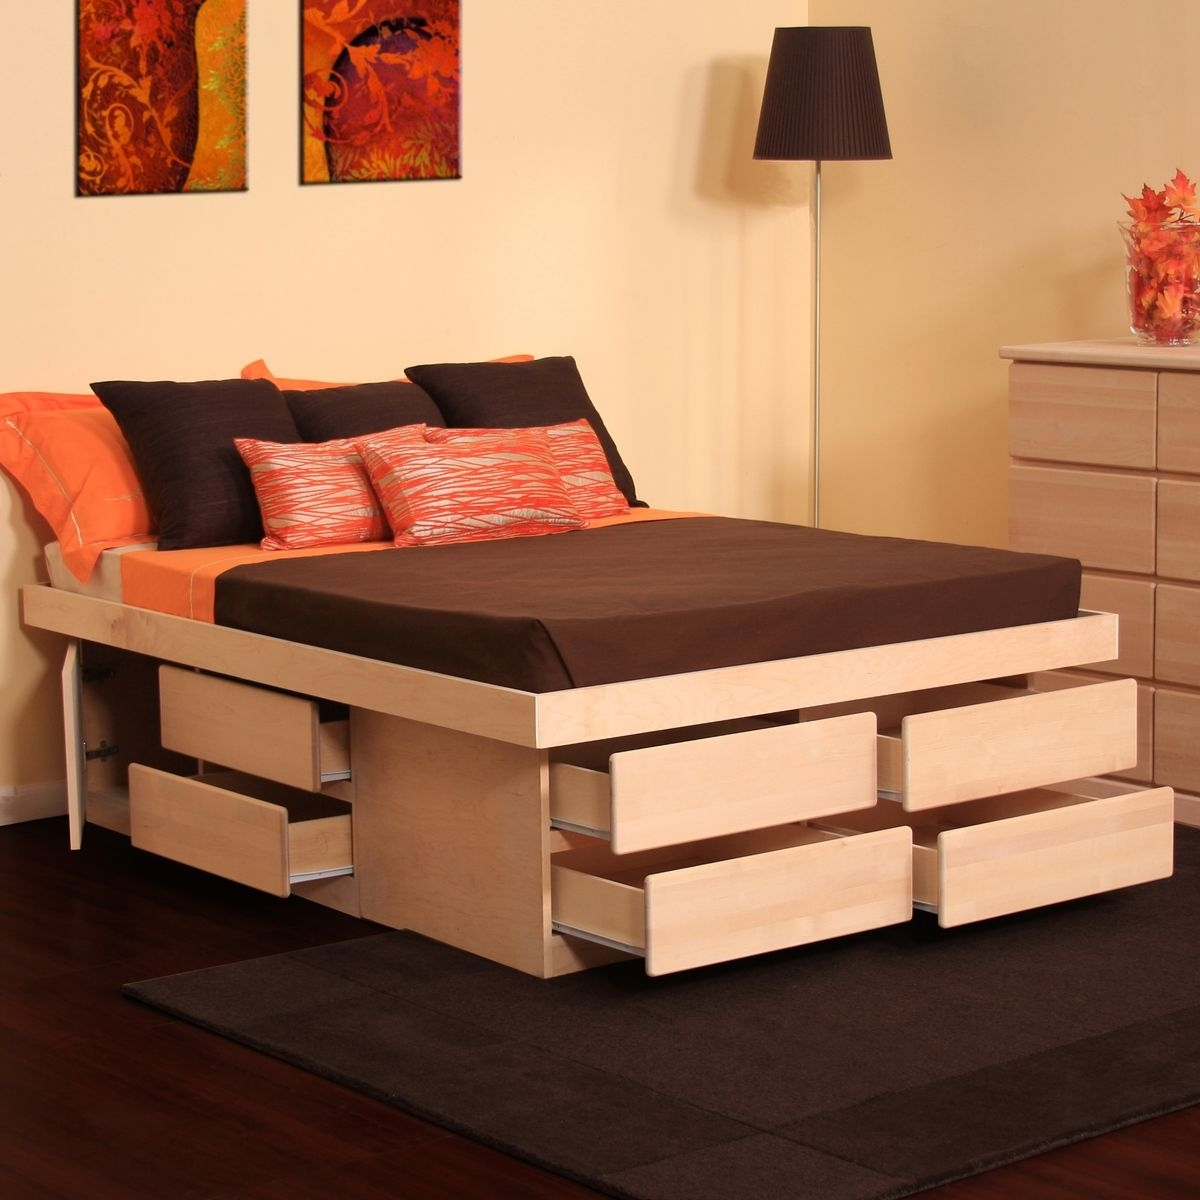 Queen Size Platform Bed Frame With Drawers